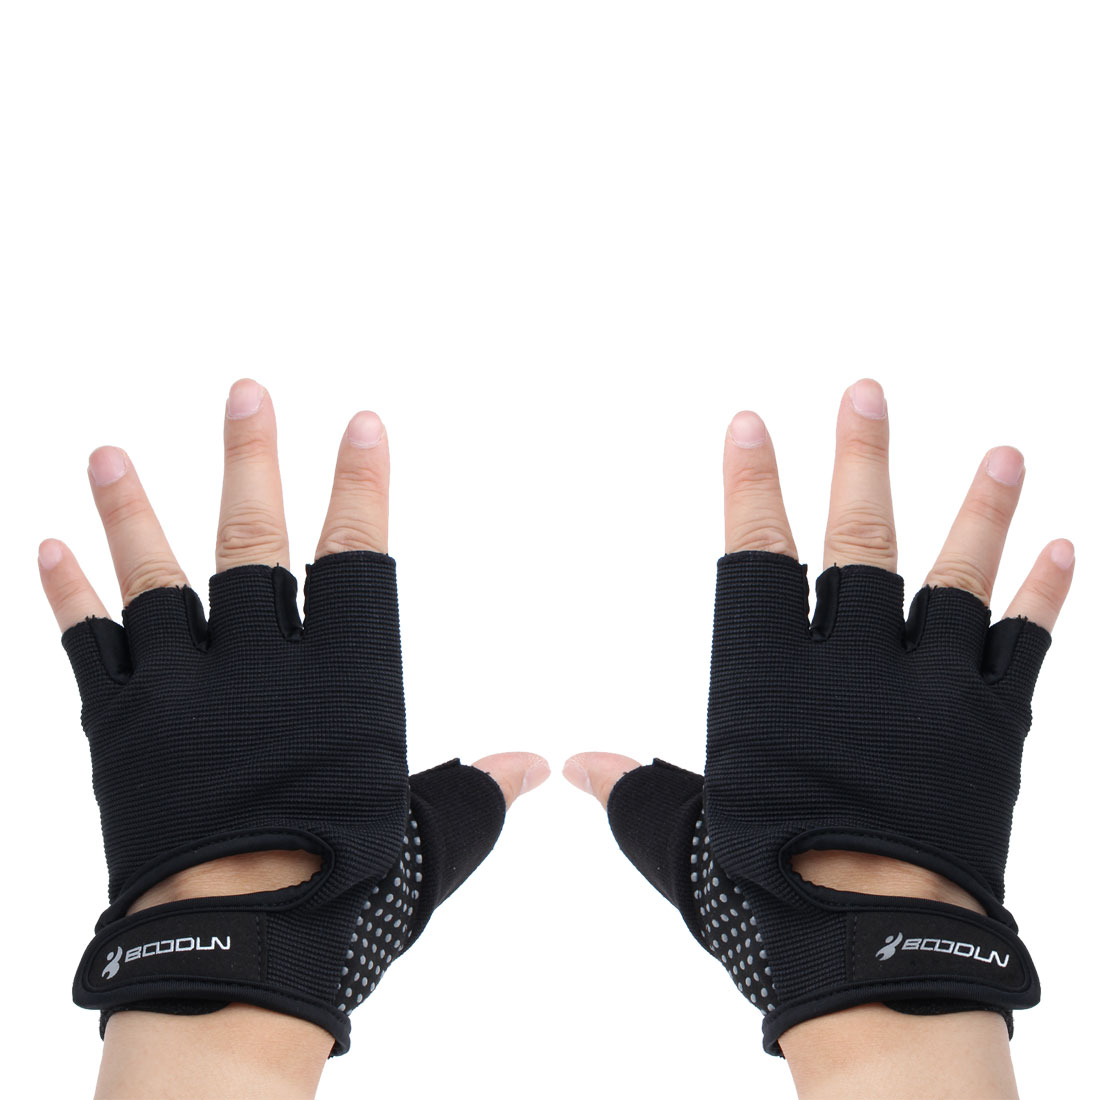 BOODUN Authorized Gym Workout Weight Lifting Training Adjustable Anti Slip Breathable Fitness Half Finger Gloves Black S Size Pair